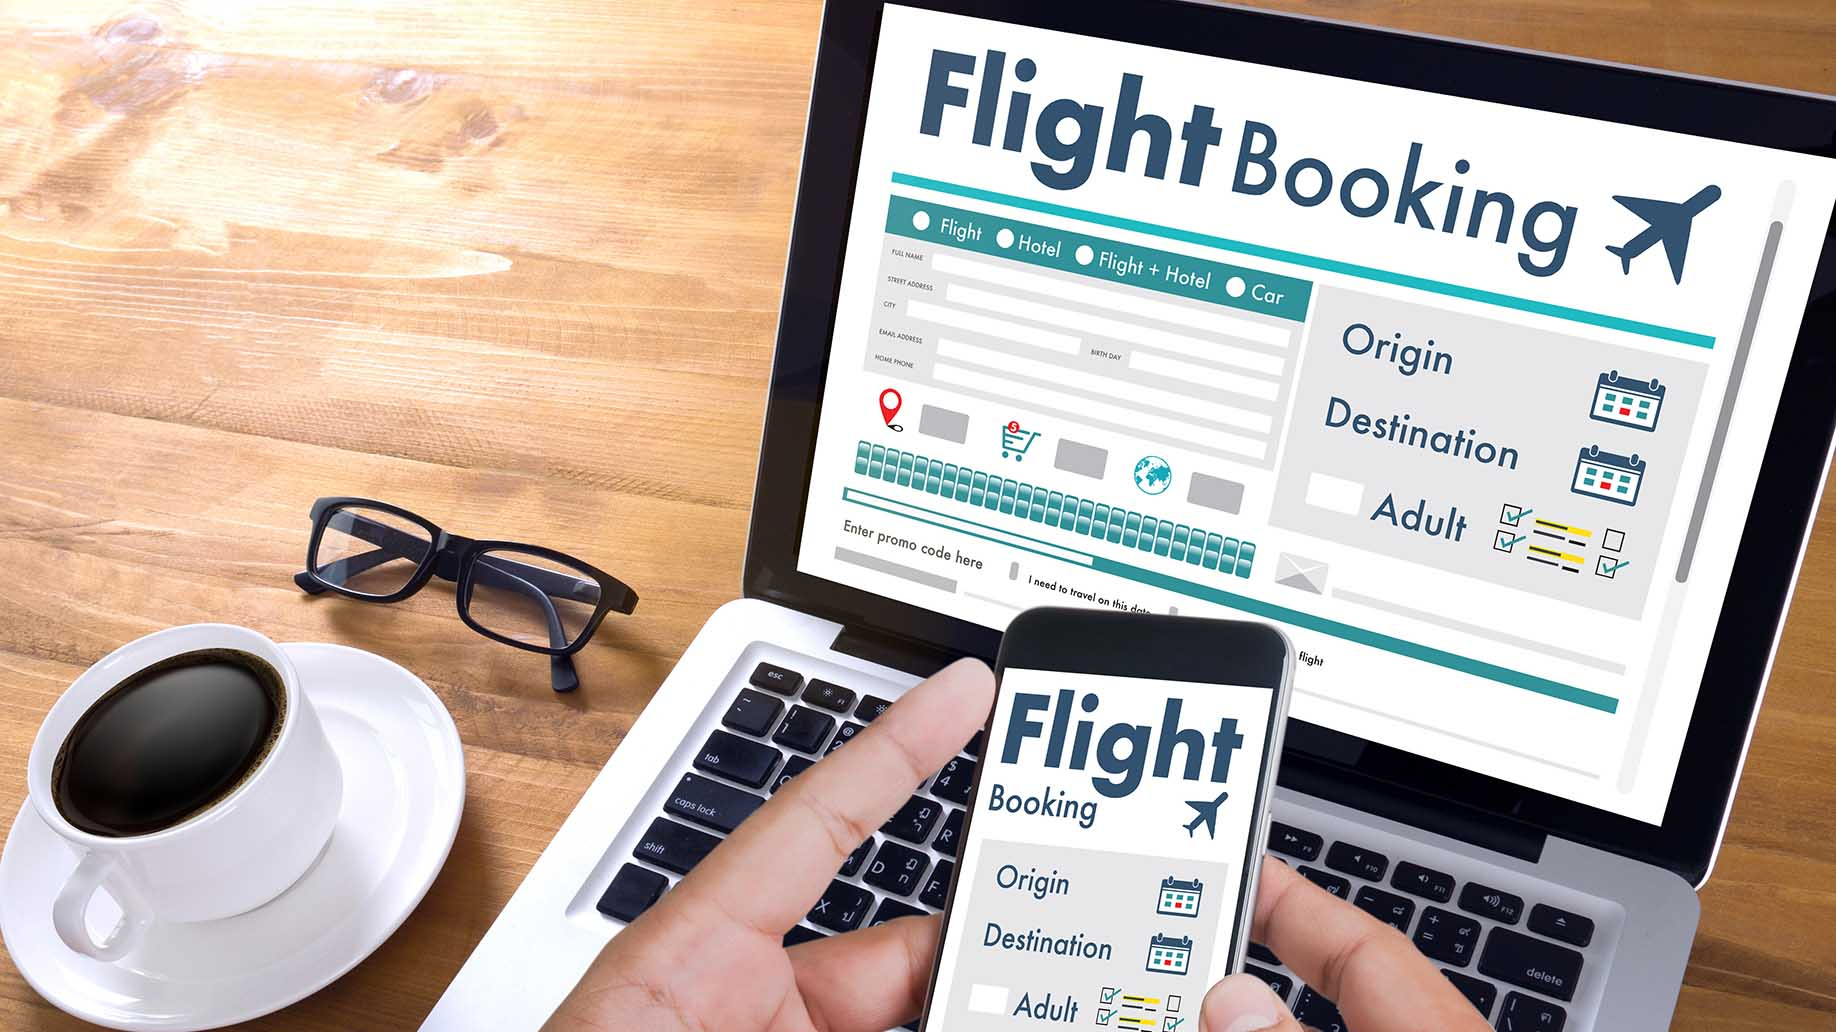 go flight booking air online ticket